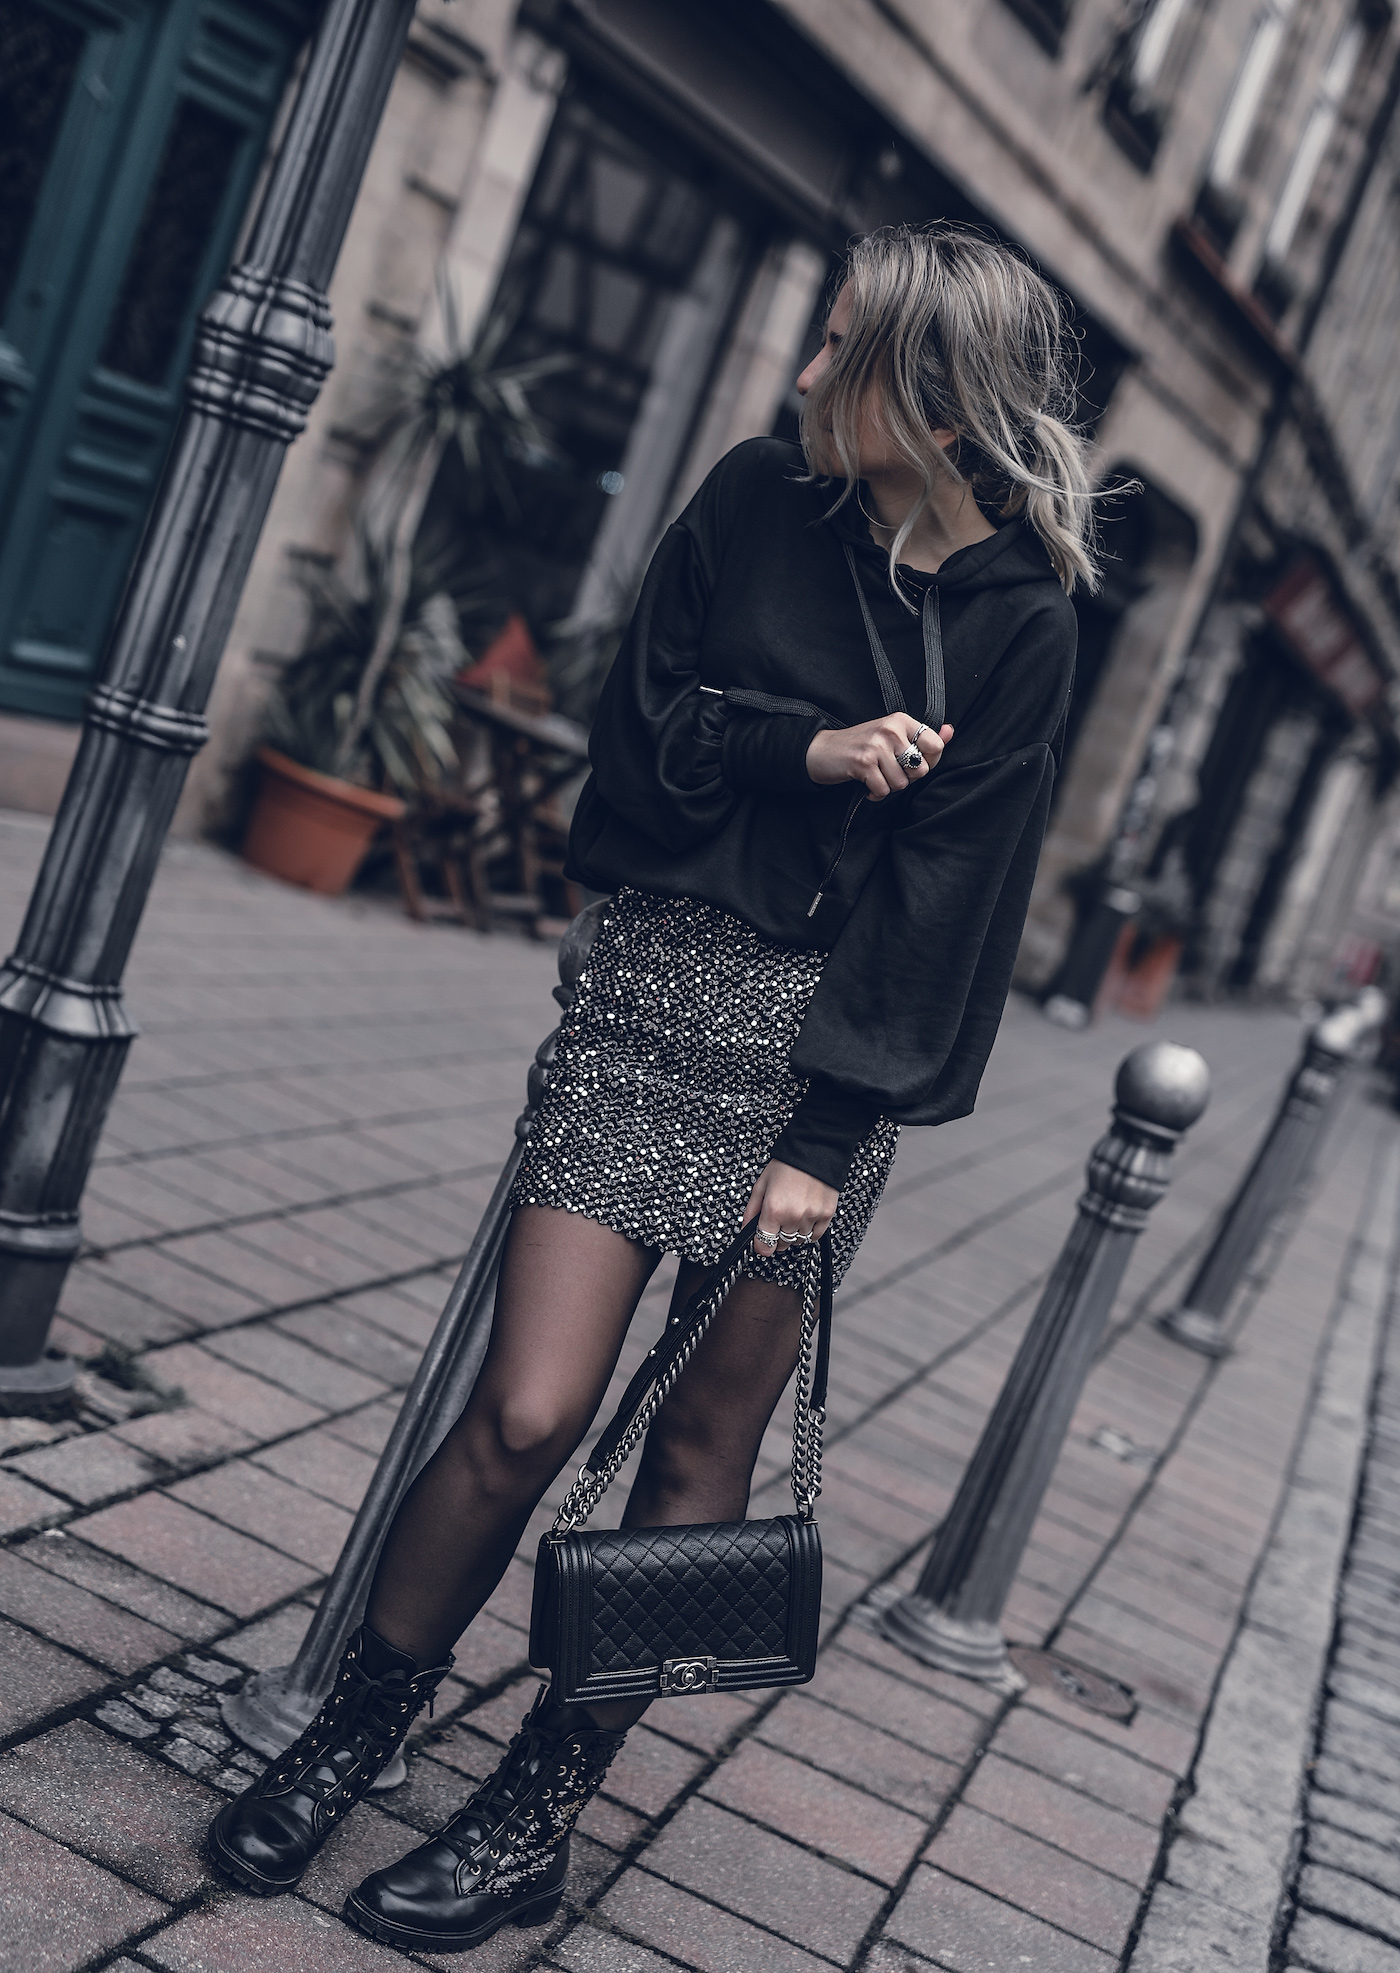 Festive Christmas Outfit 2017 Casual Sparkle Holidays New Years Women Fashion | seen on WantGetRepeat.com Fashion Blog